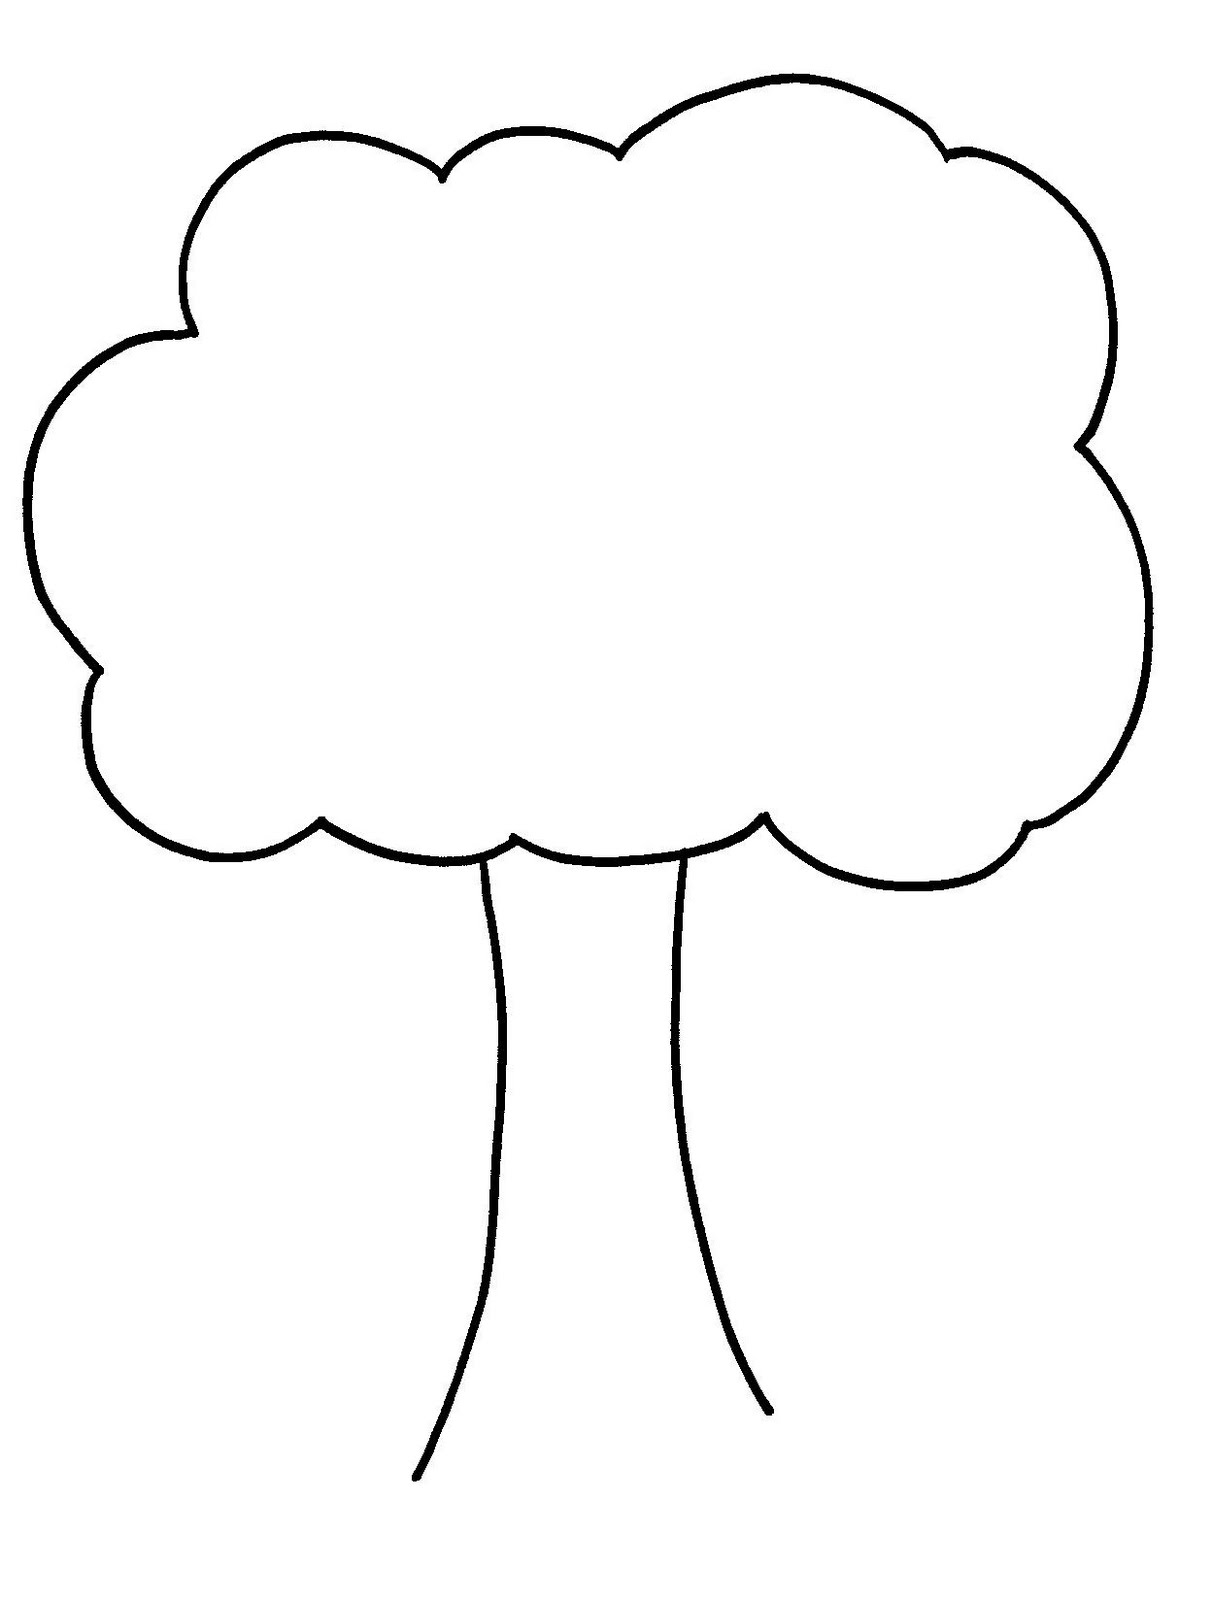 Free Outline Of Trees, Download Free Clip Art, Free Clip Art